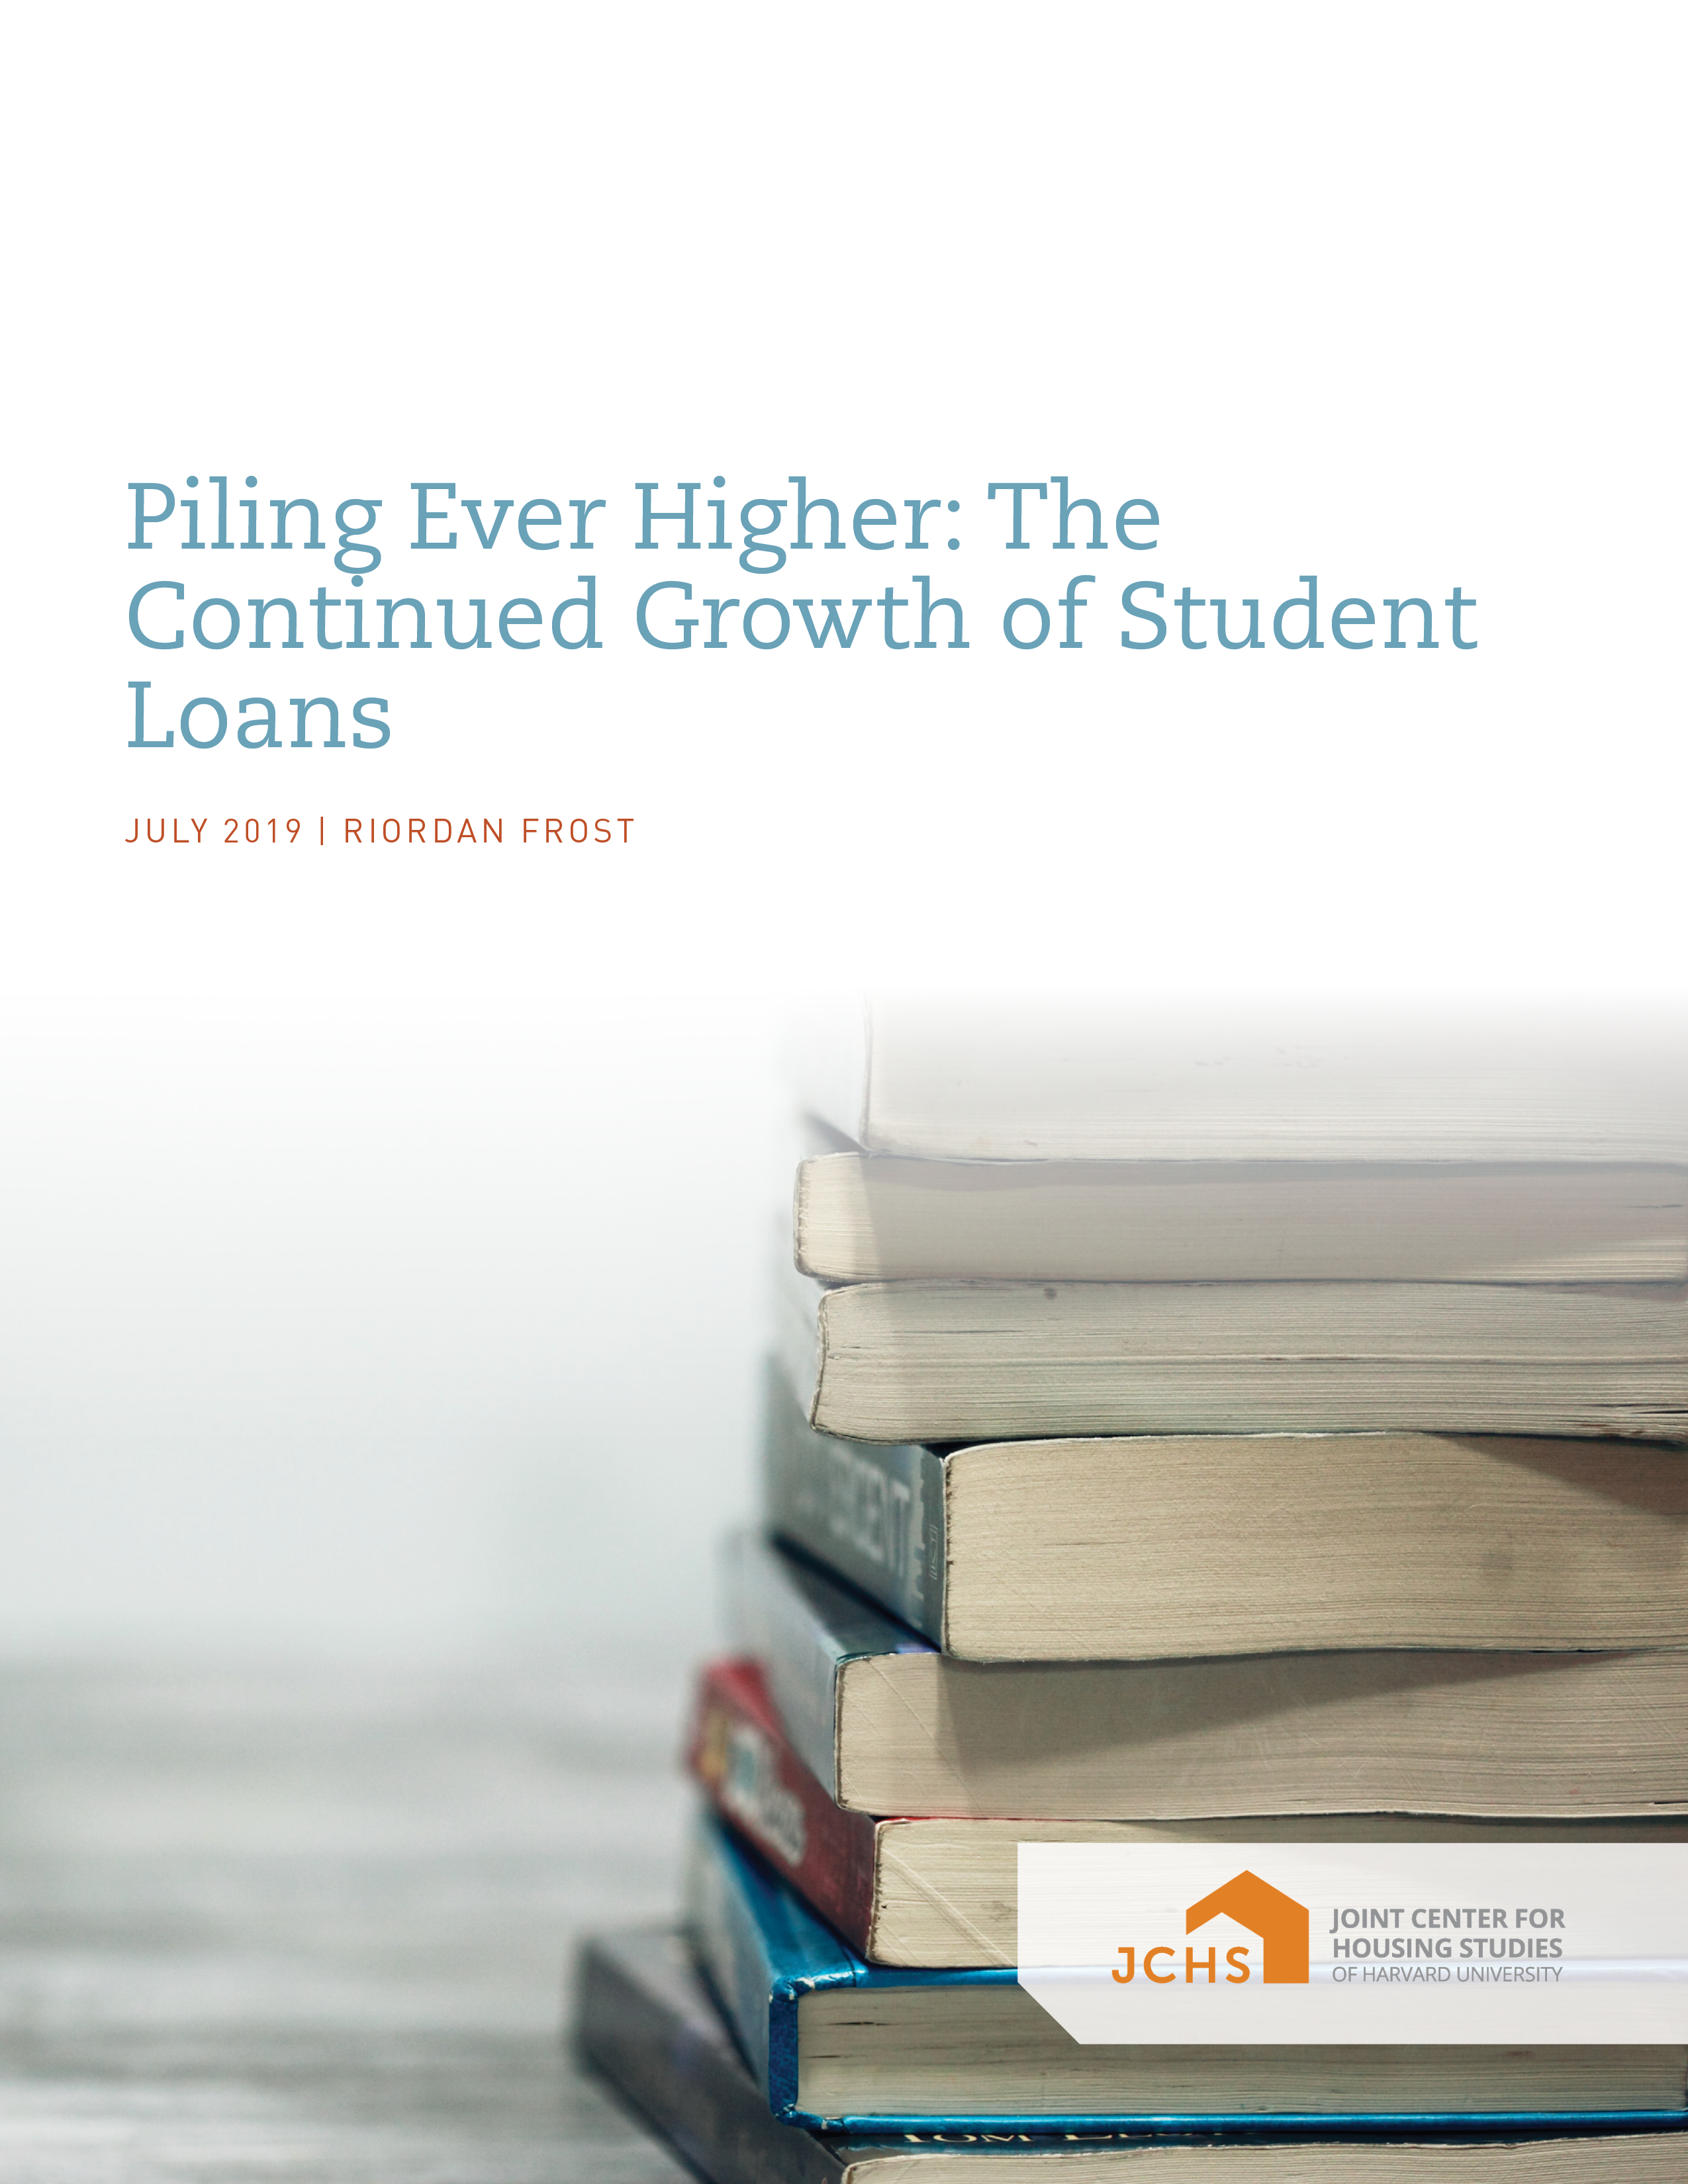 Piling Ever Higher: The Continued Growth of Student Loans